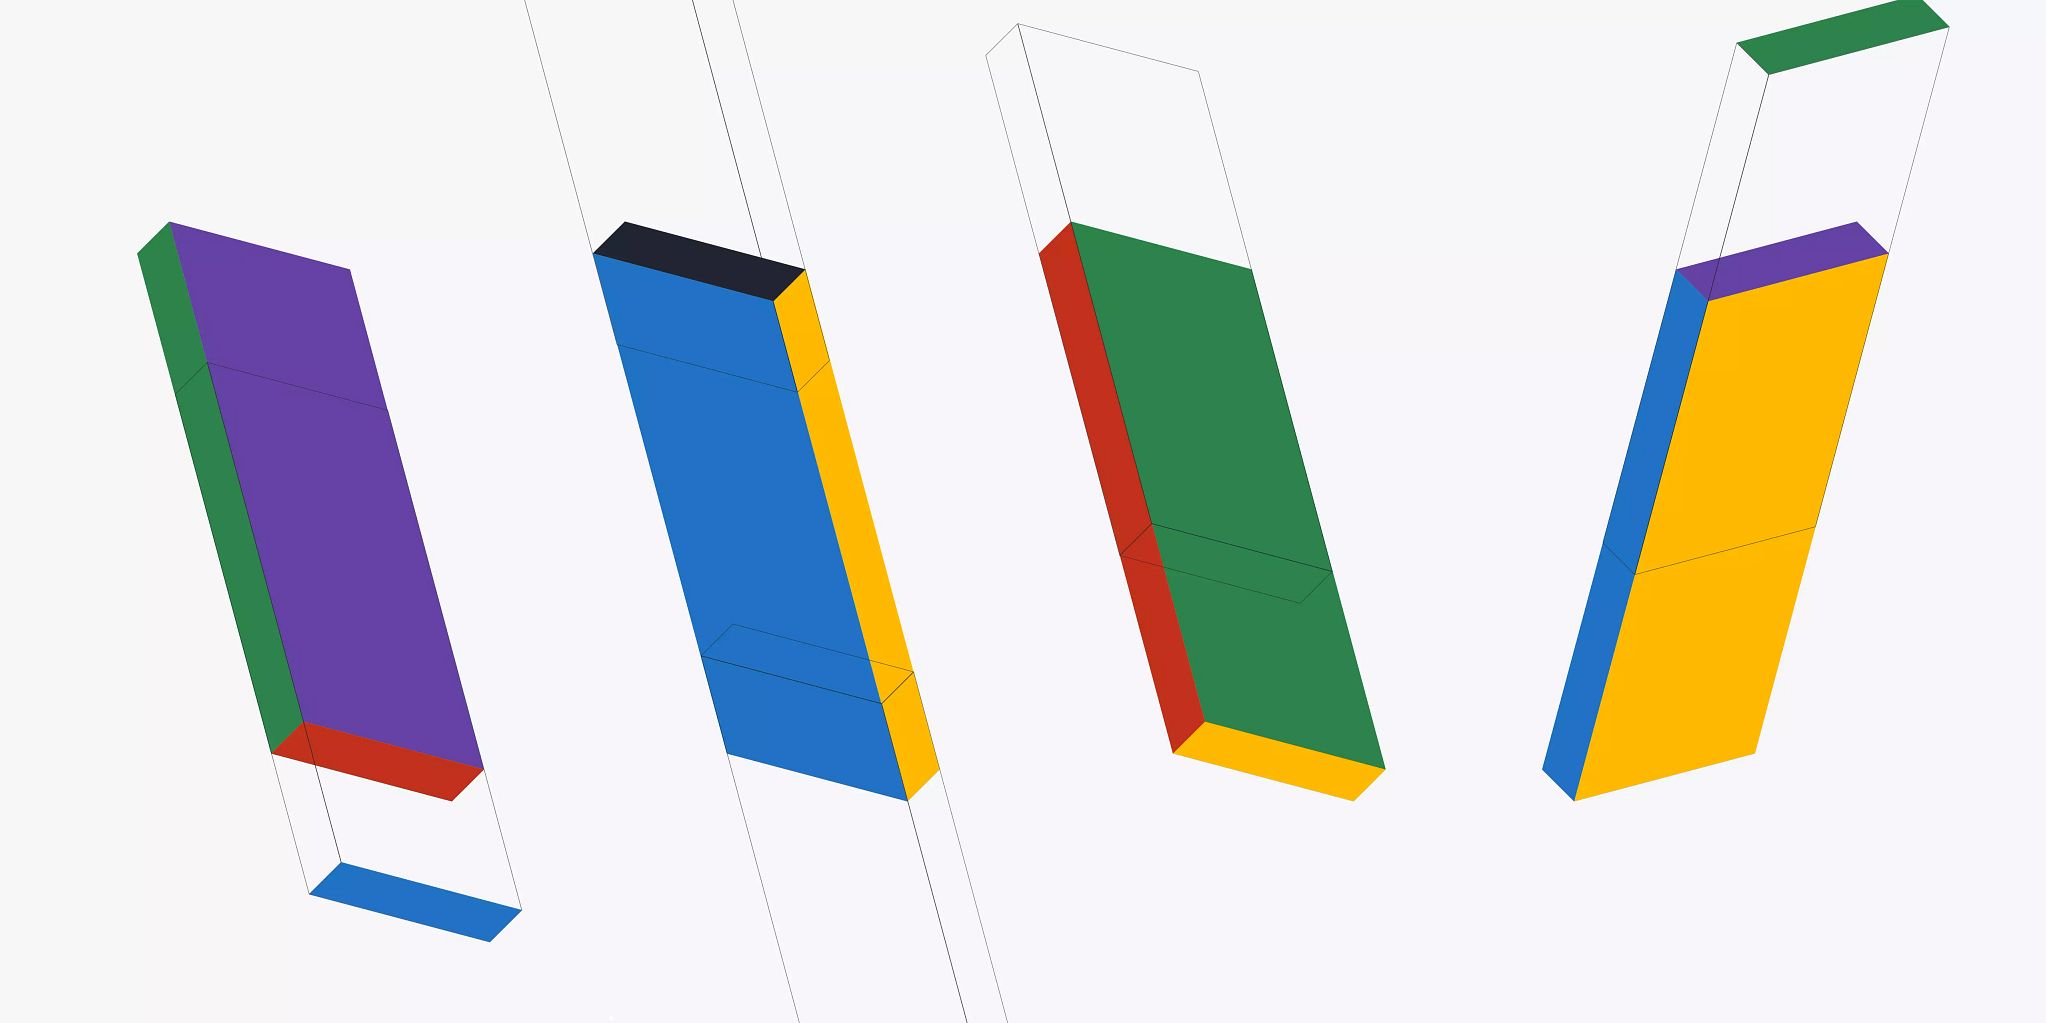 Four colorful rectangle graphics rotated vertically and placed in a row horizontally. Each is designed to look 3D within the 2D graphic.